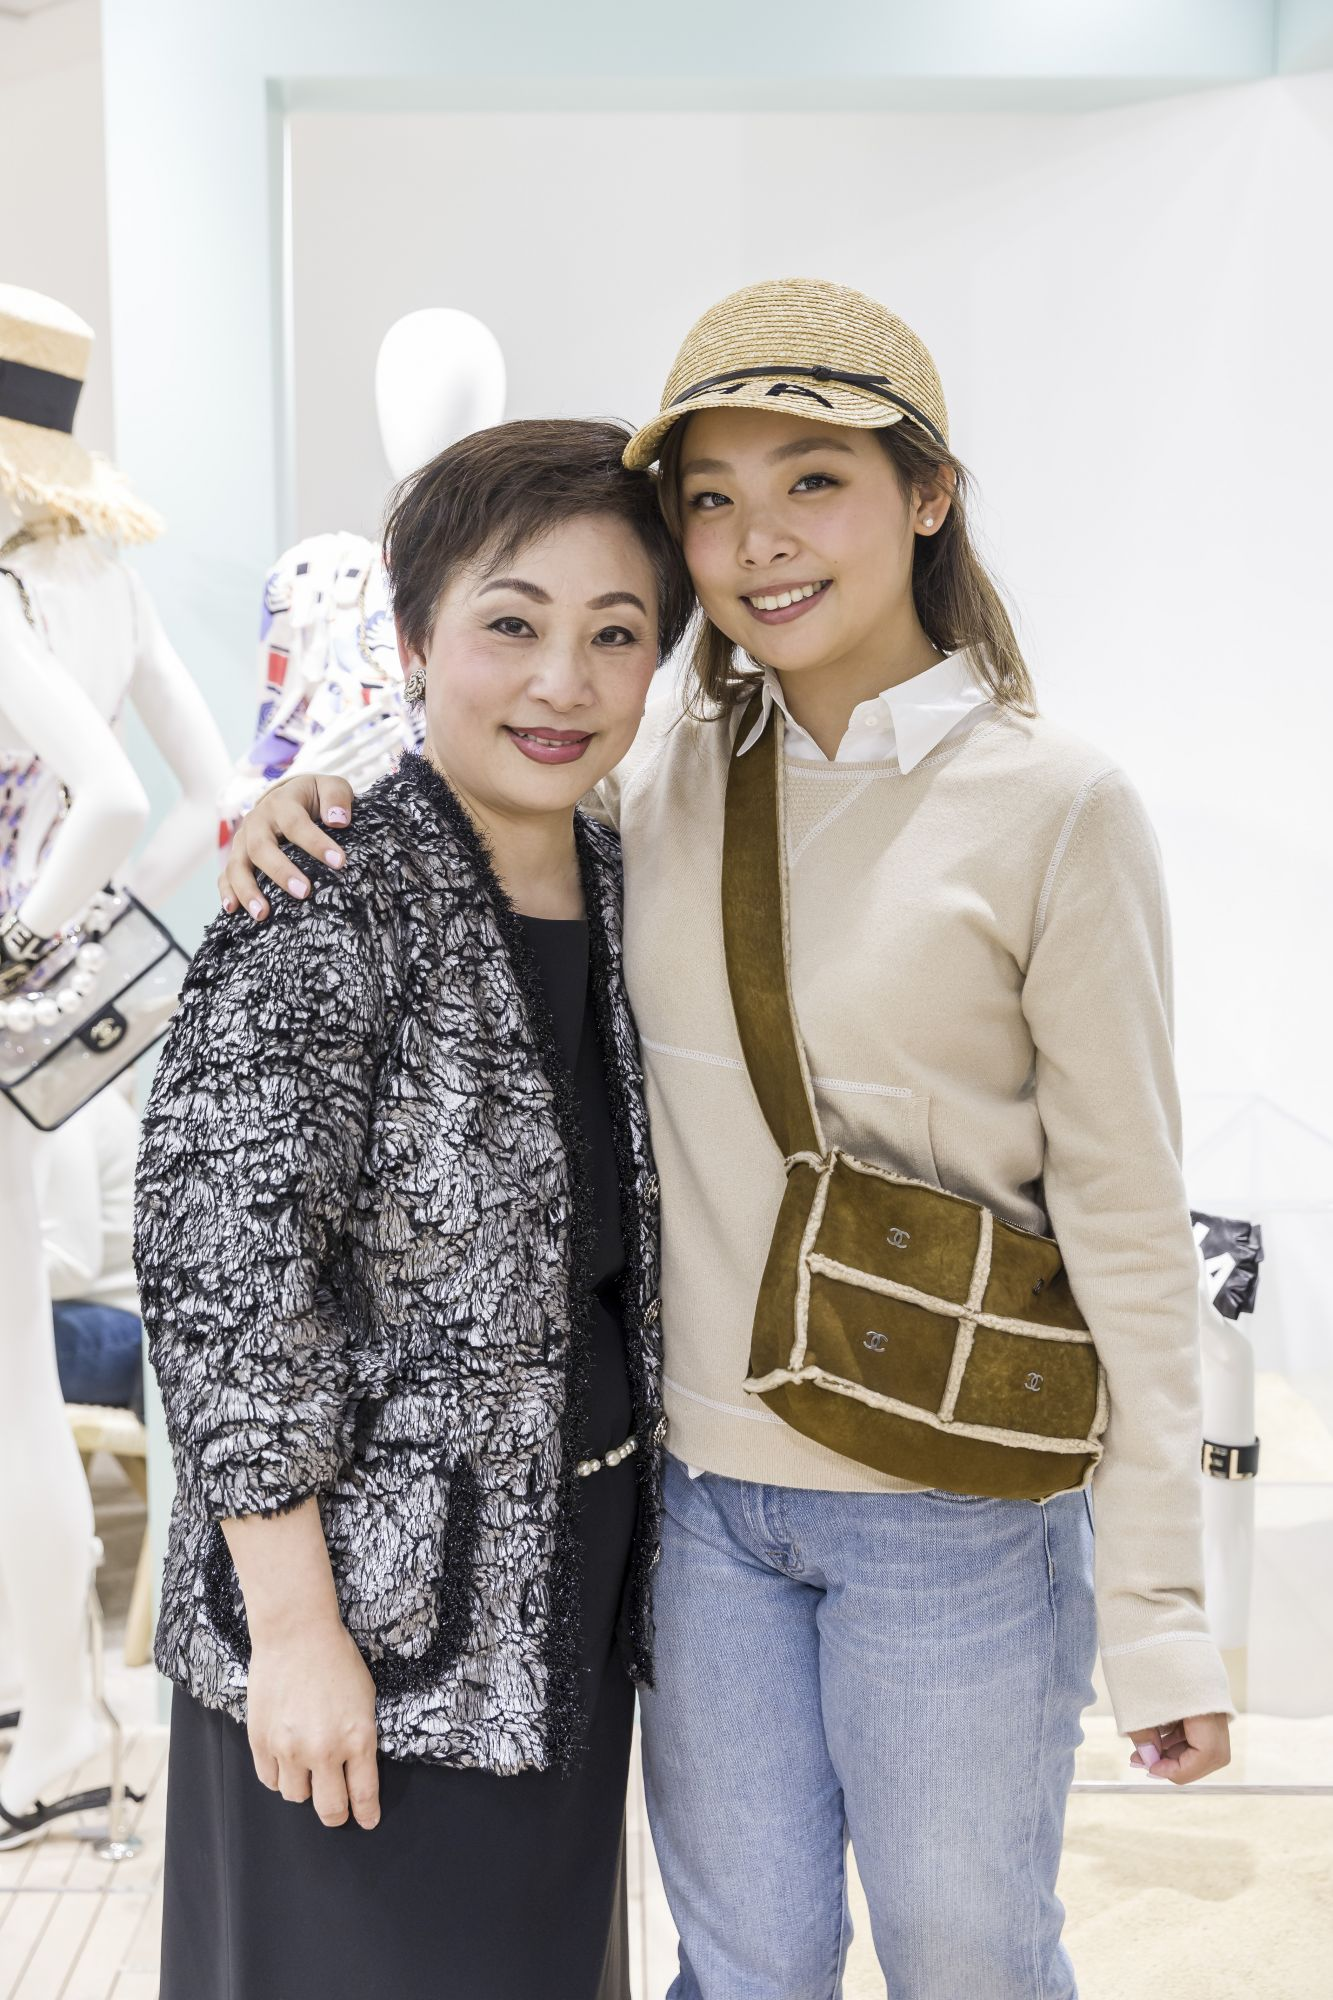 Jenny Lam Of Vestiaire Collective Shares Her Mother's Best Beauty Advice